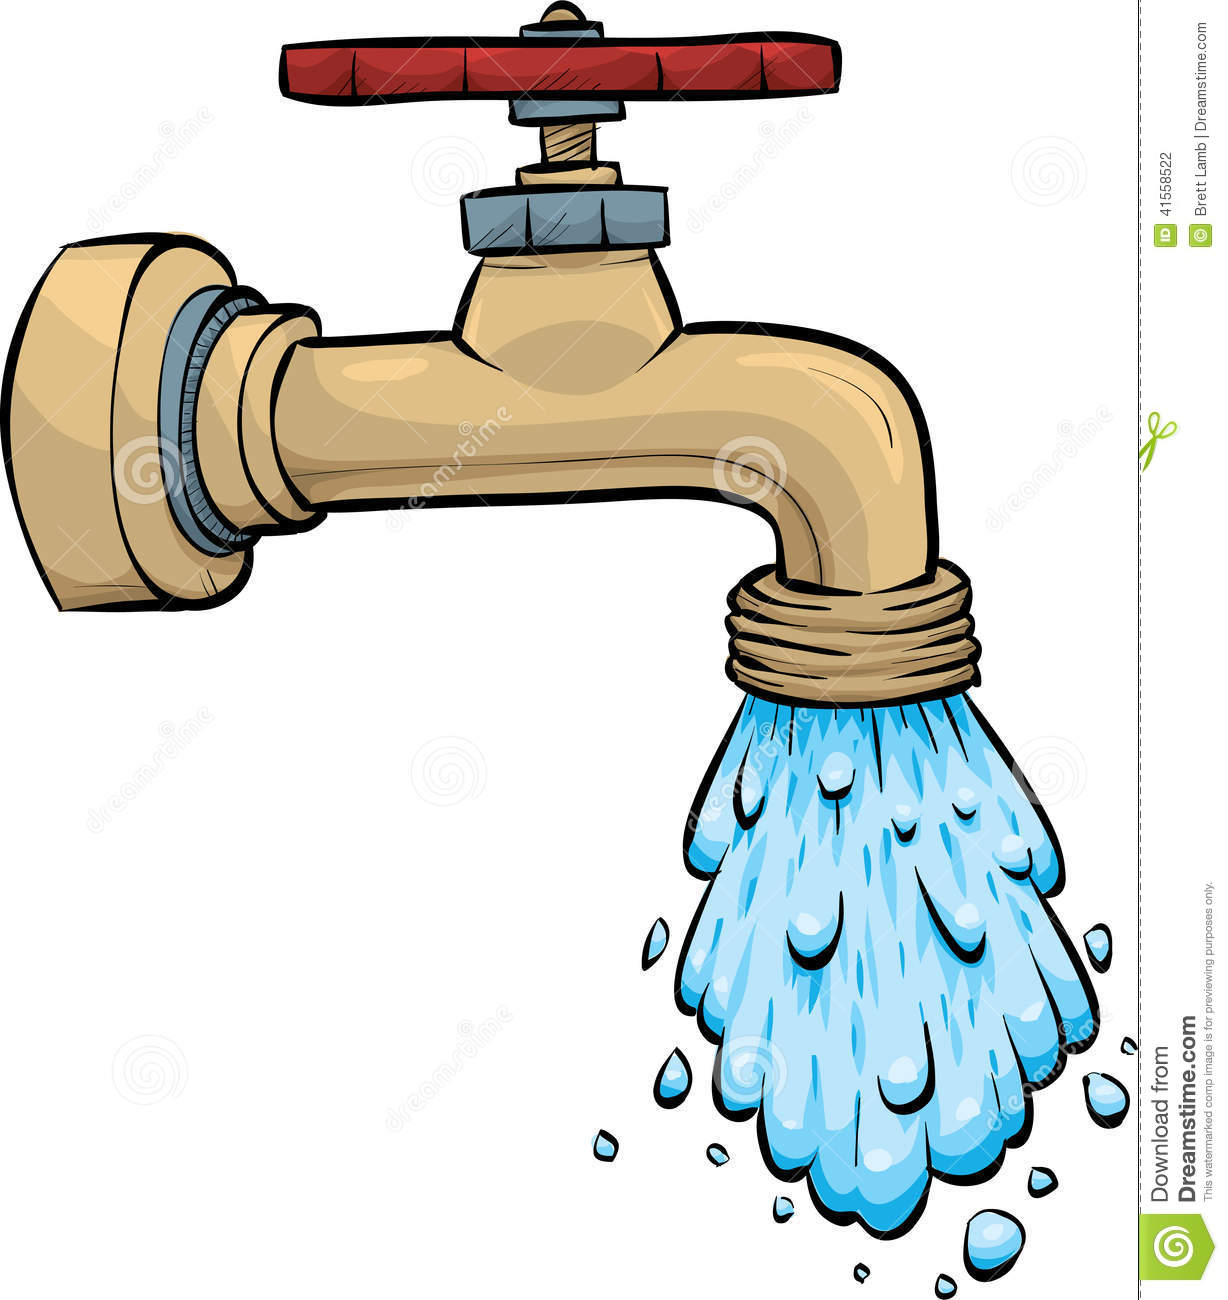 Water Faucet Stock Illustration - Image: 41558522